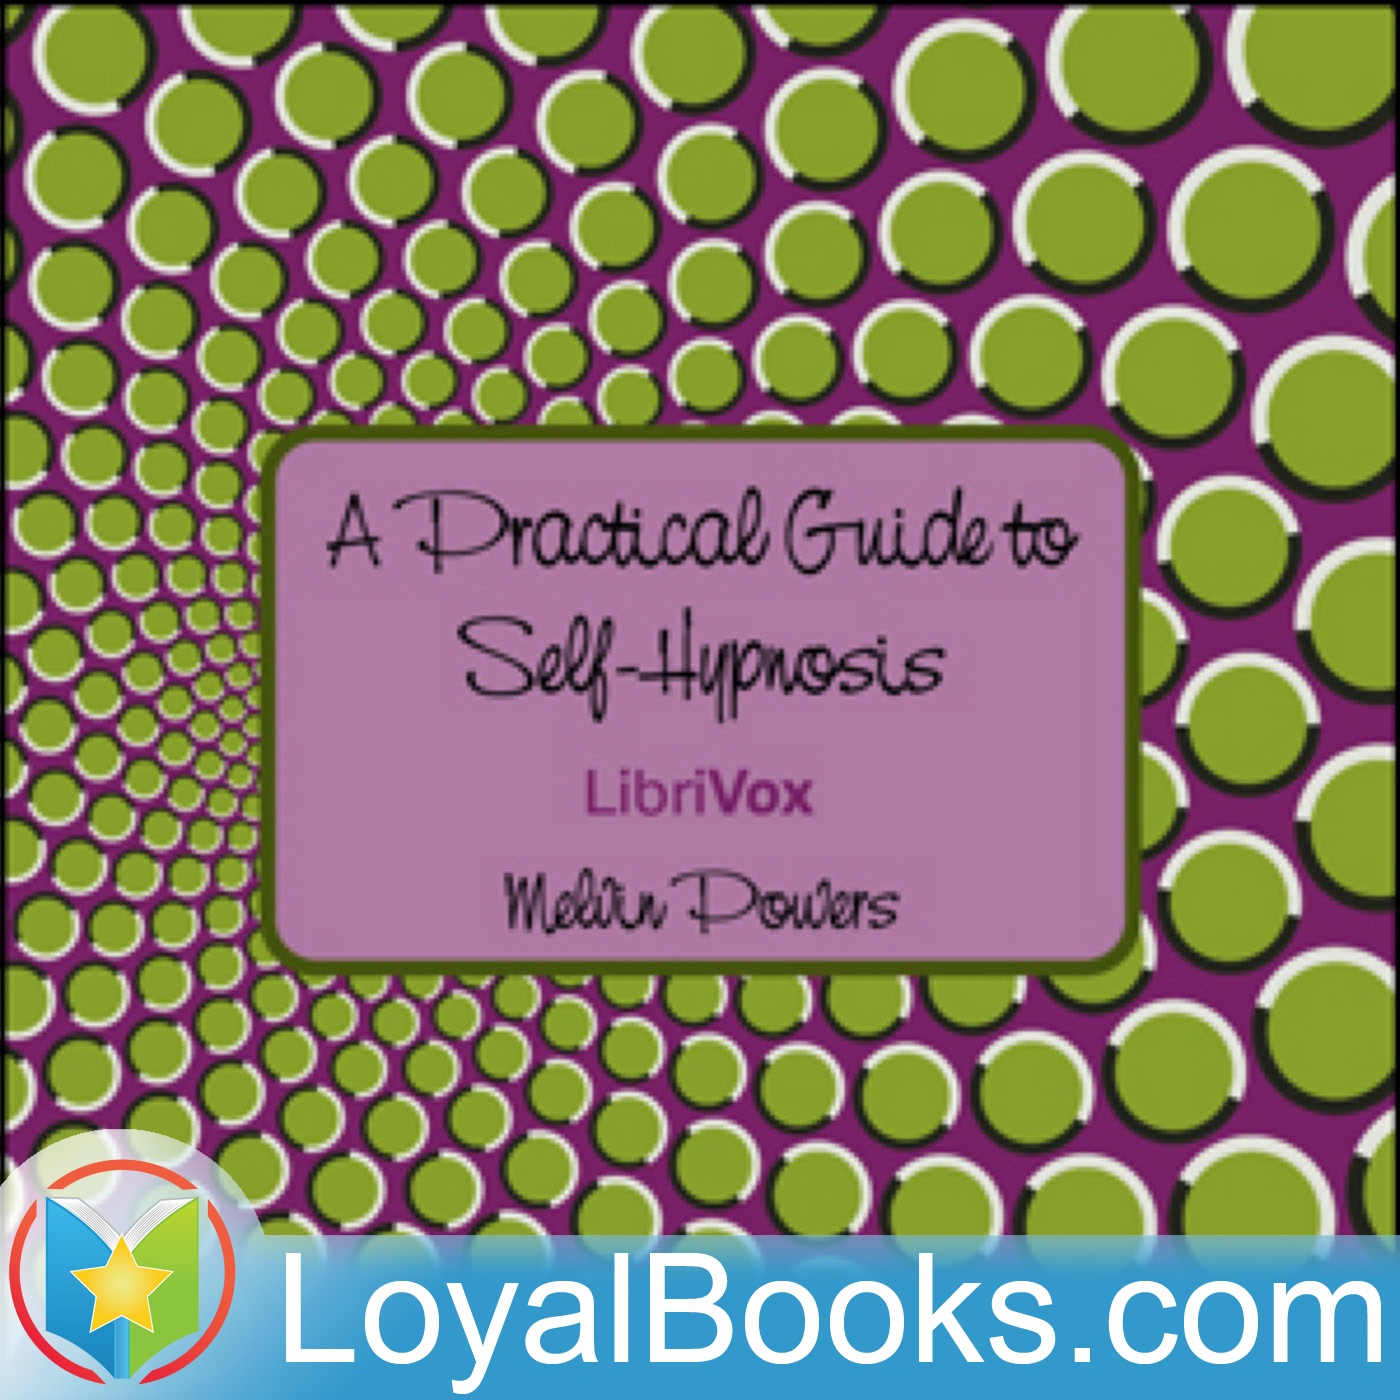 <![CDATA[A Practical Guide to Self-Hypnosis by Melvin Powers]]>